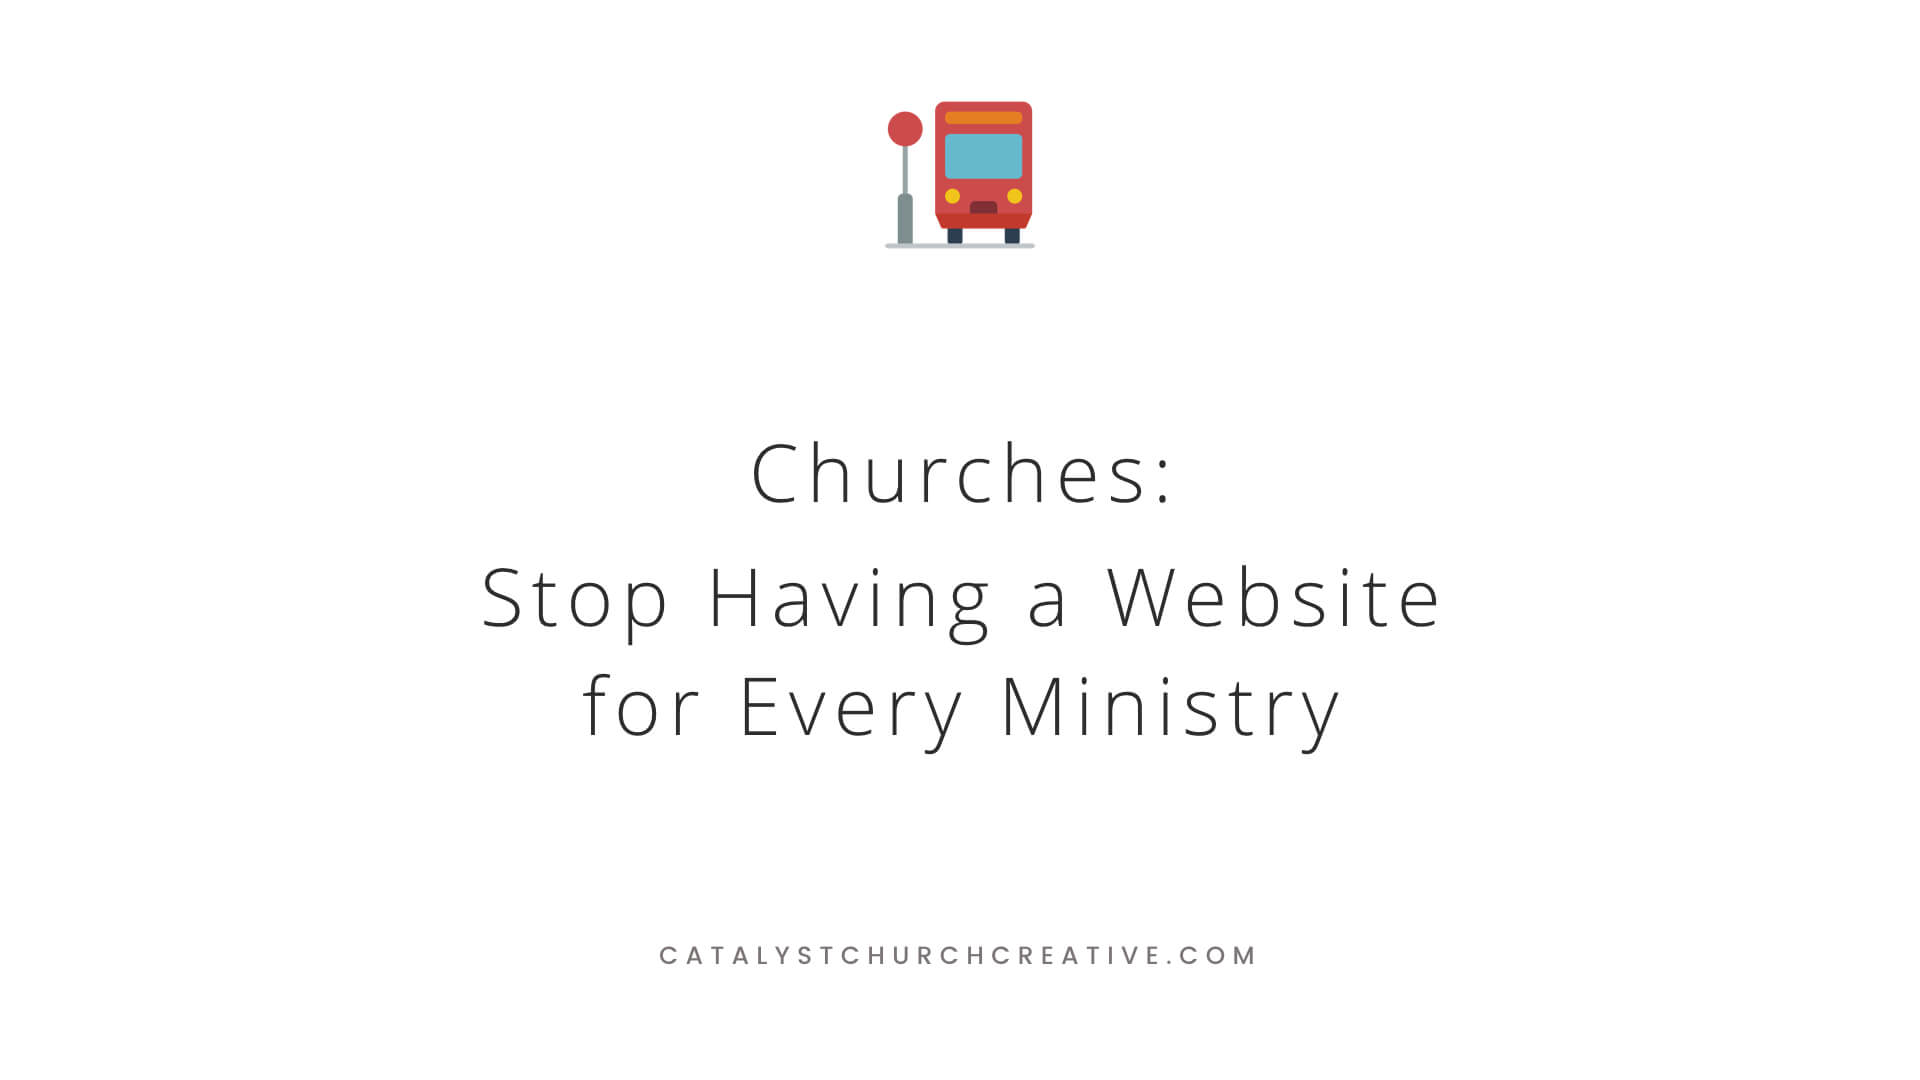 Churches can and should get better at developing multi-site websites.